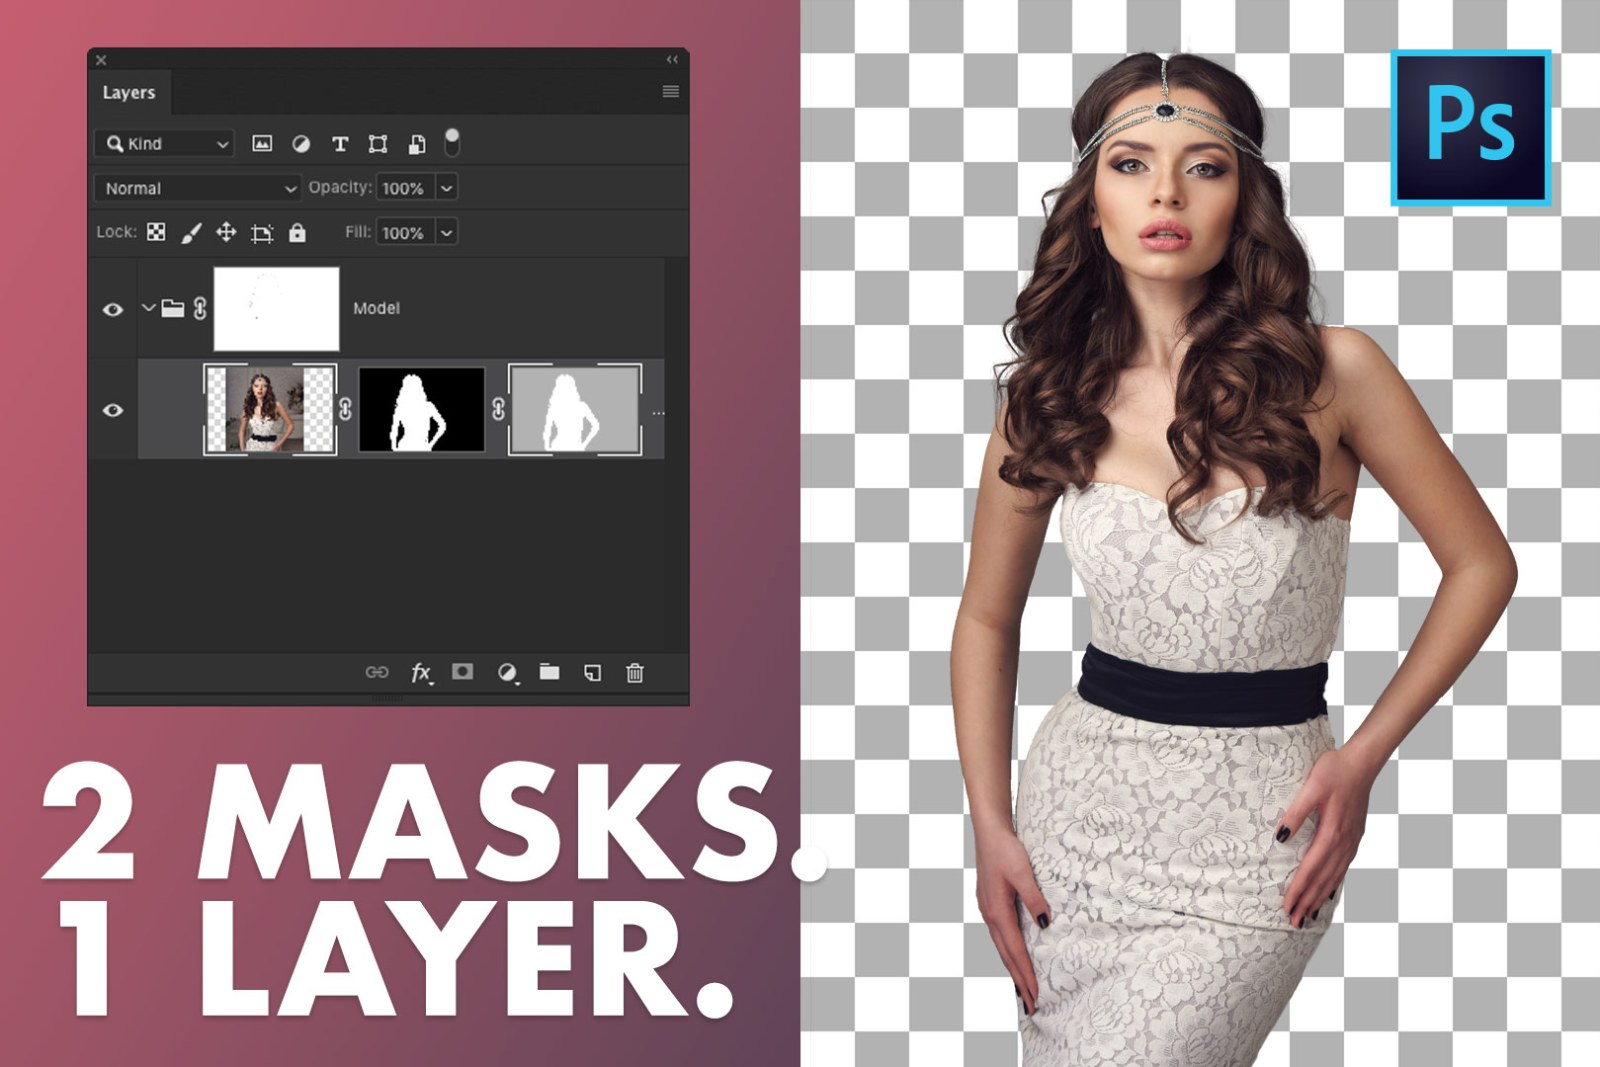 Photoshop HACK - Double Layer Mask Trick In Photoshop